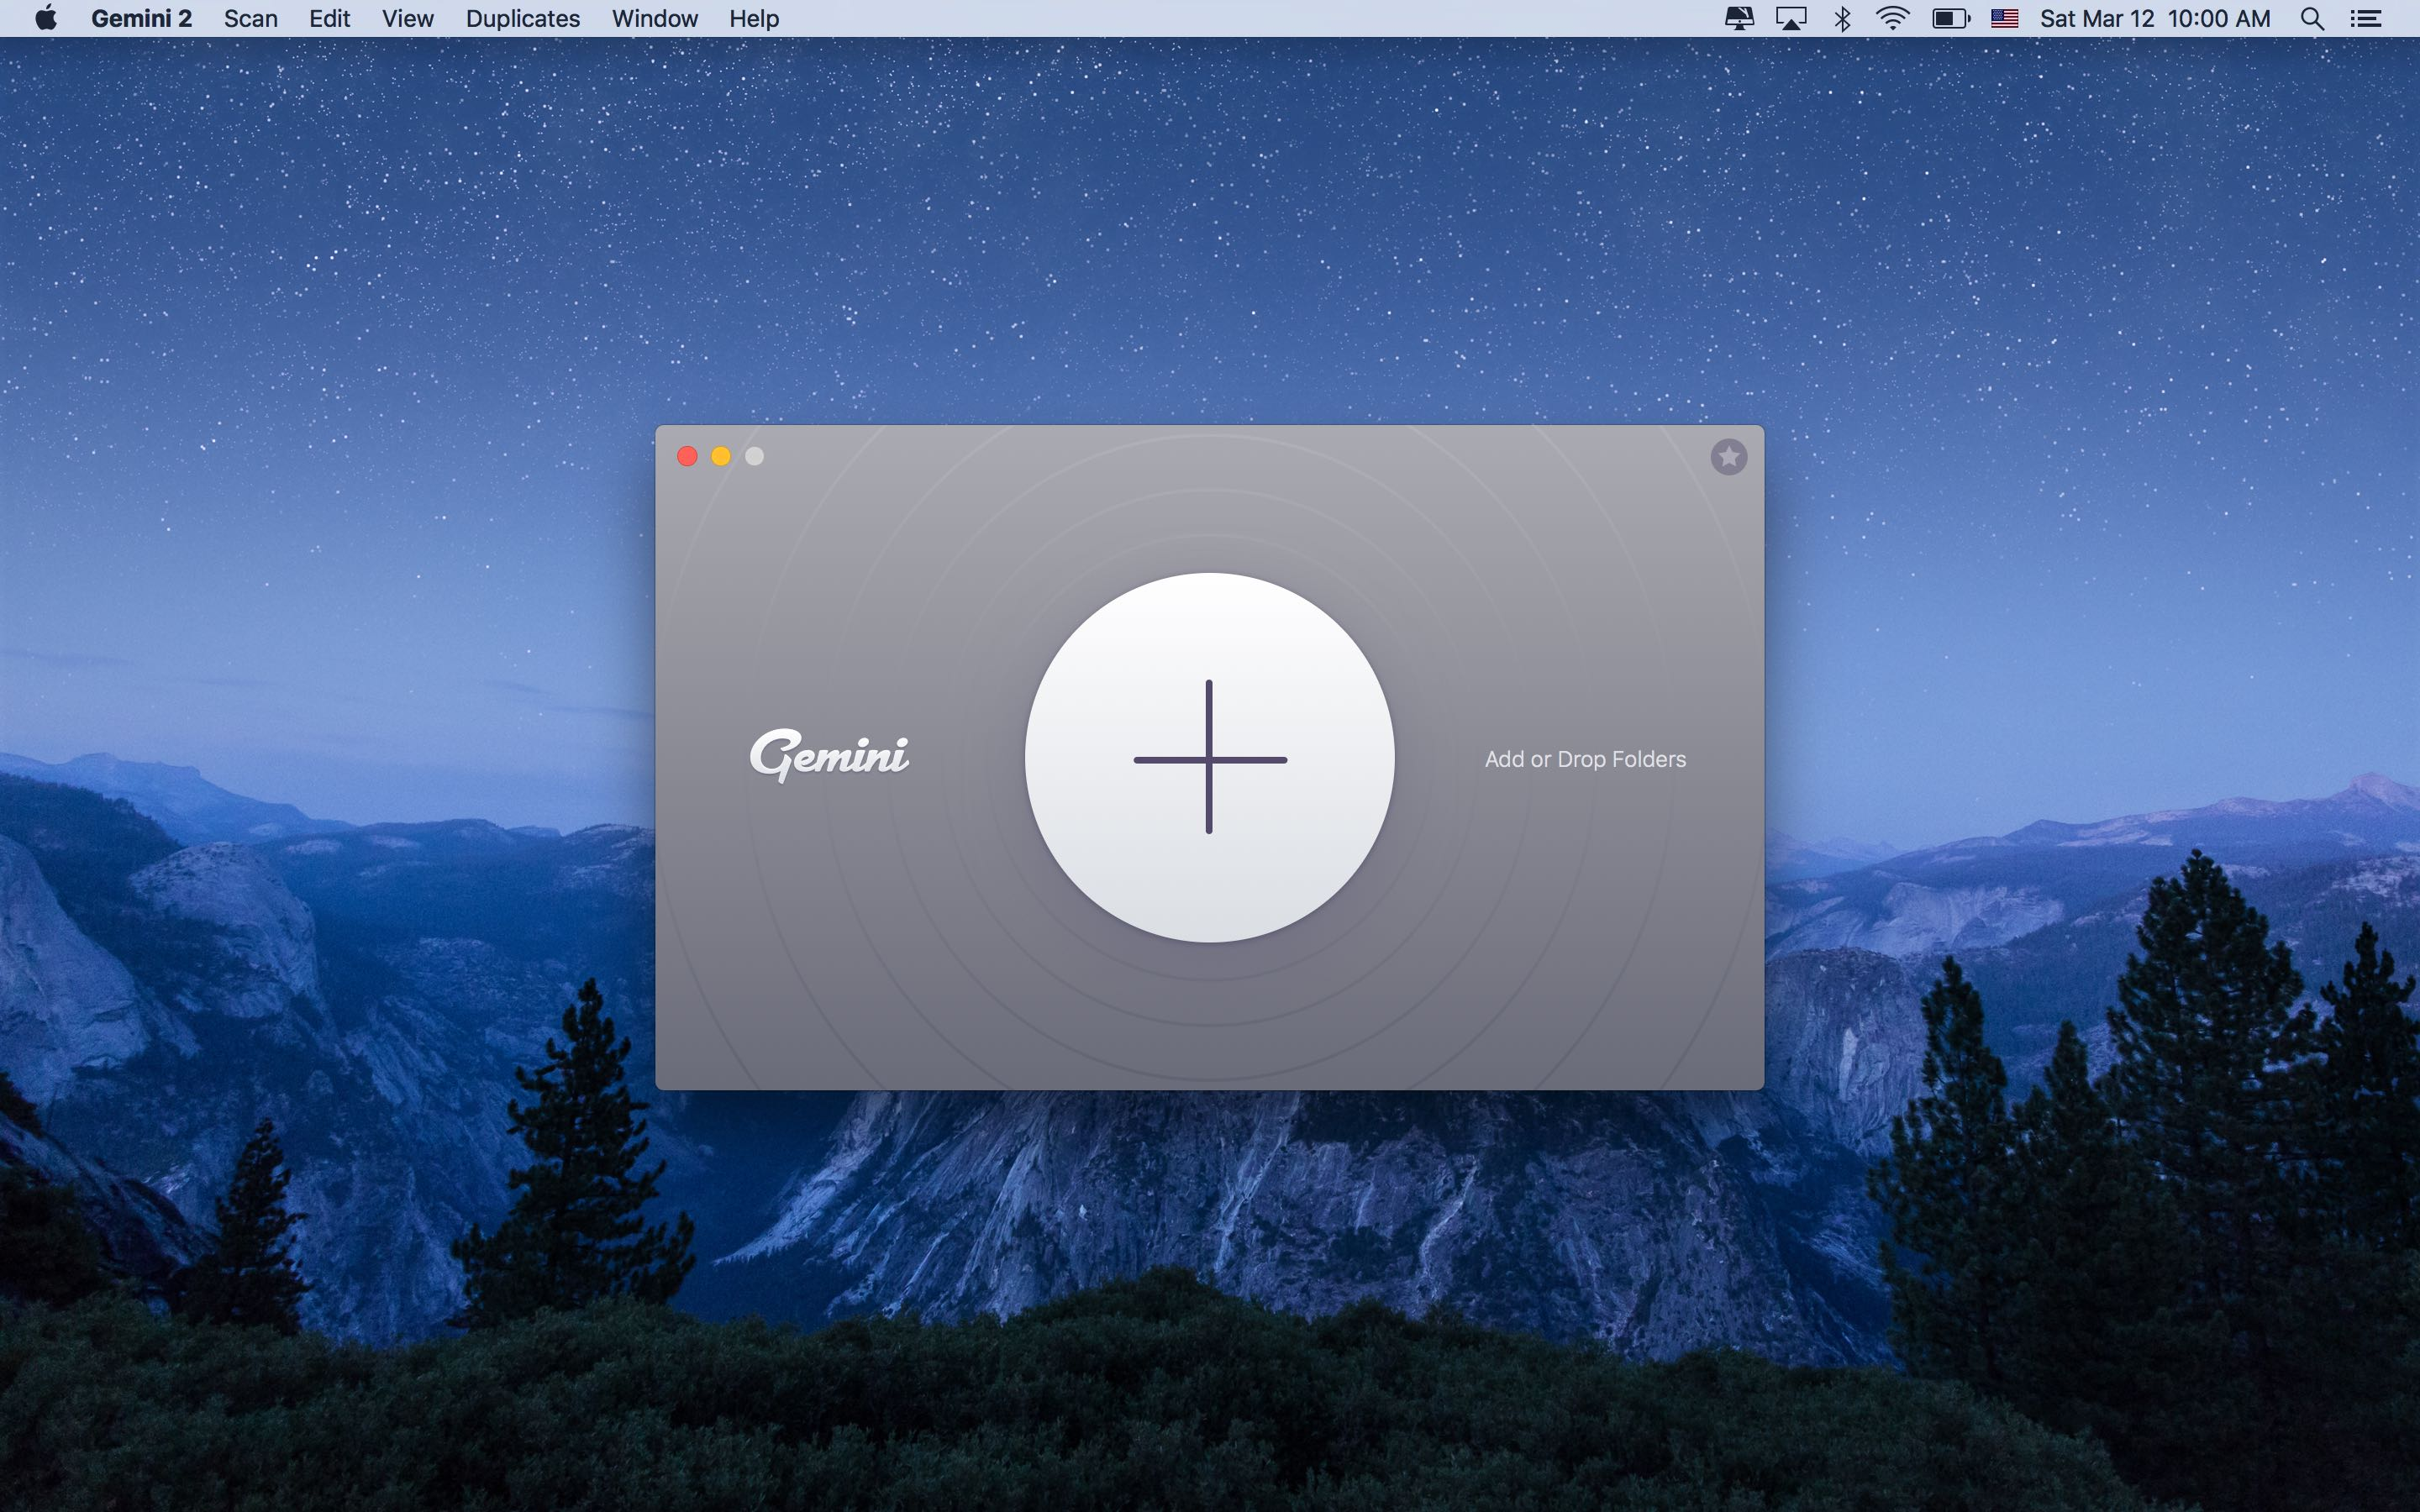 Gemini 2.0 for OS X launch screen Mac screenshot 003